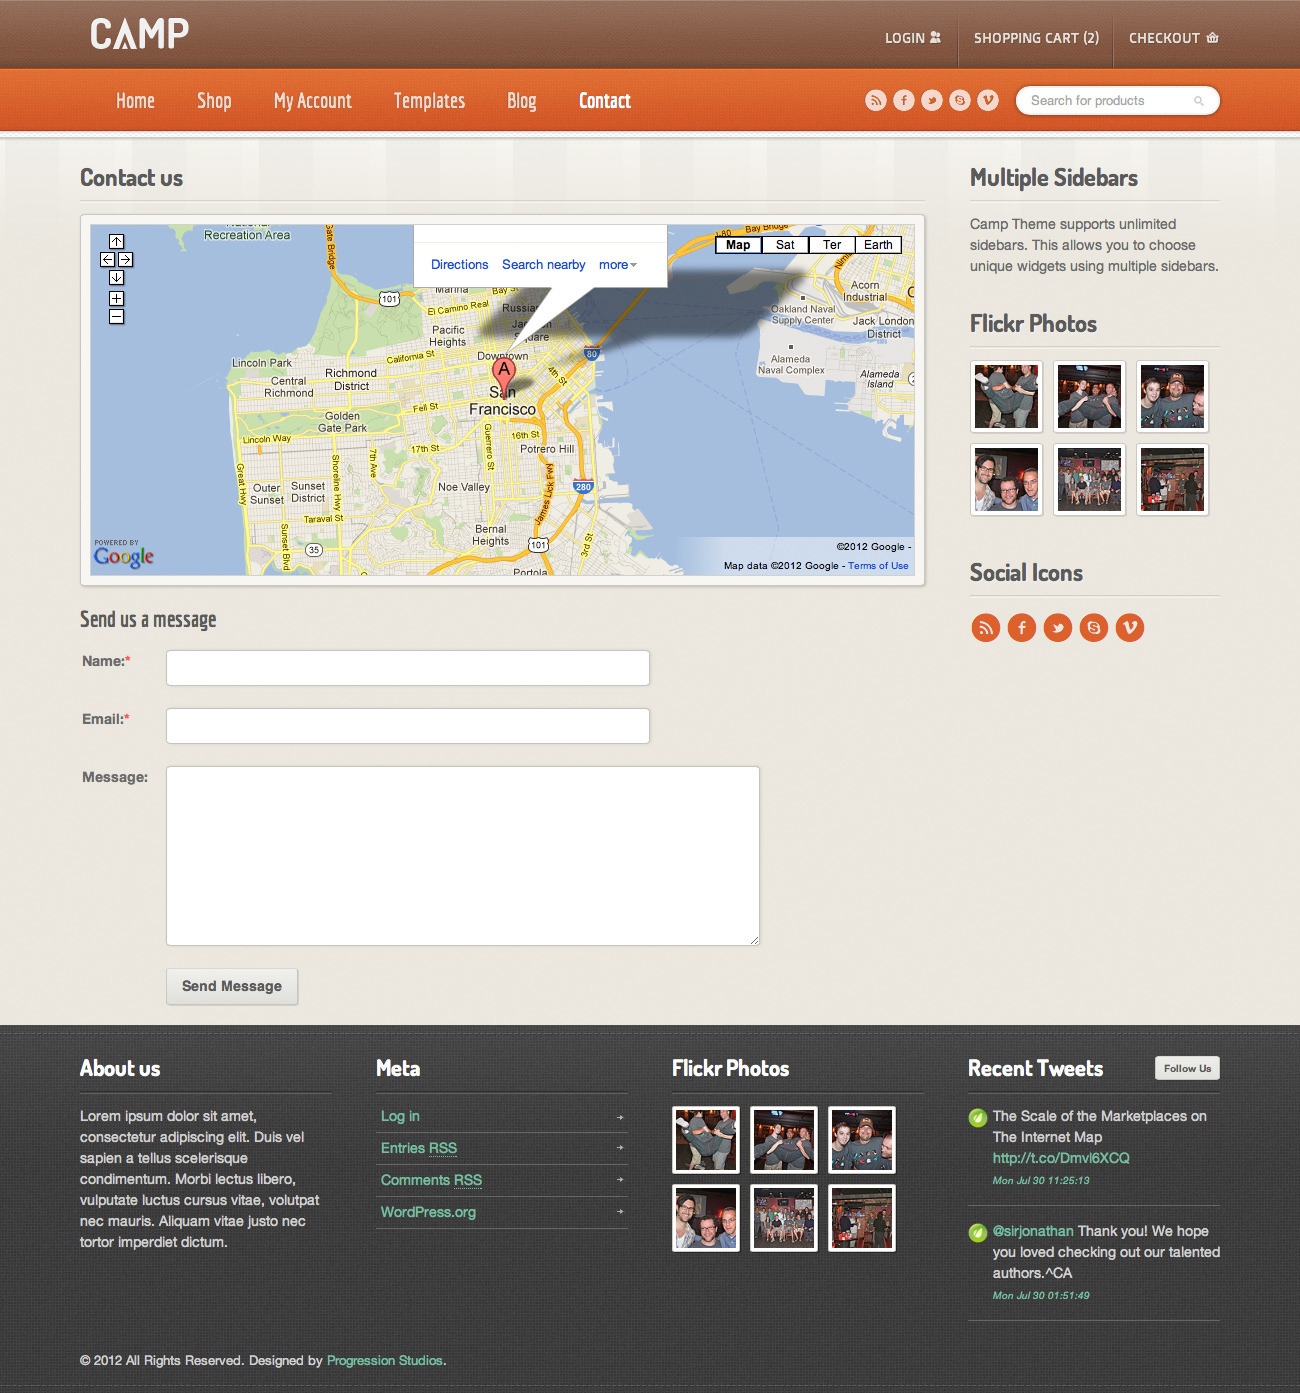 Camp - Responsive eCommerce Theme